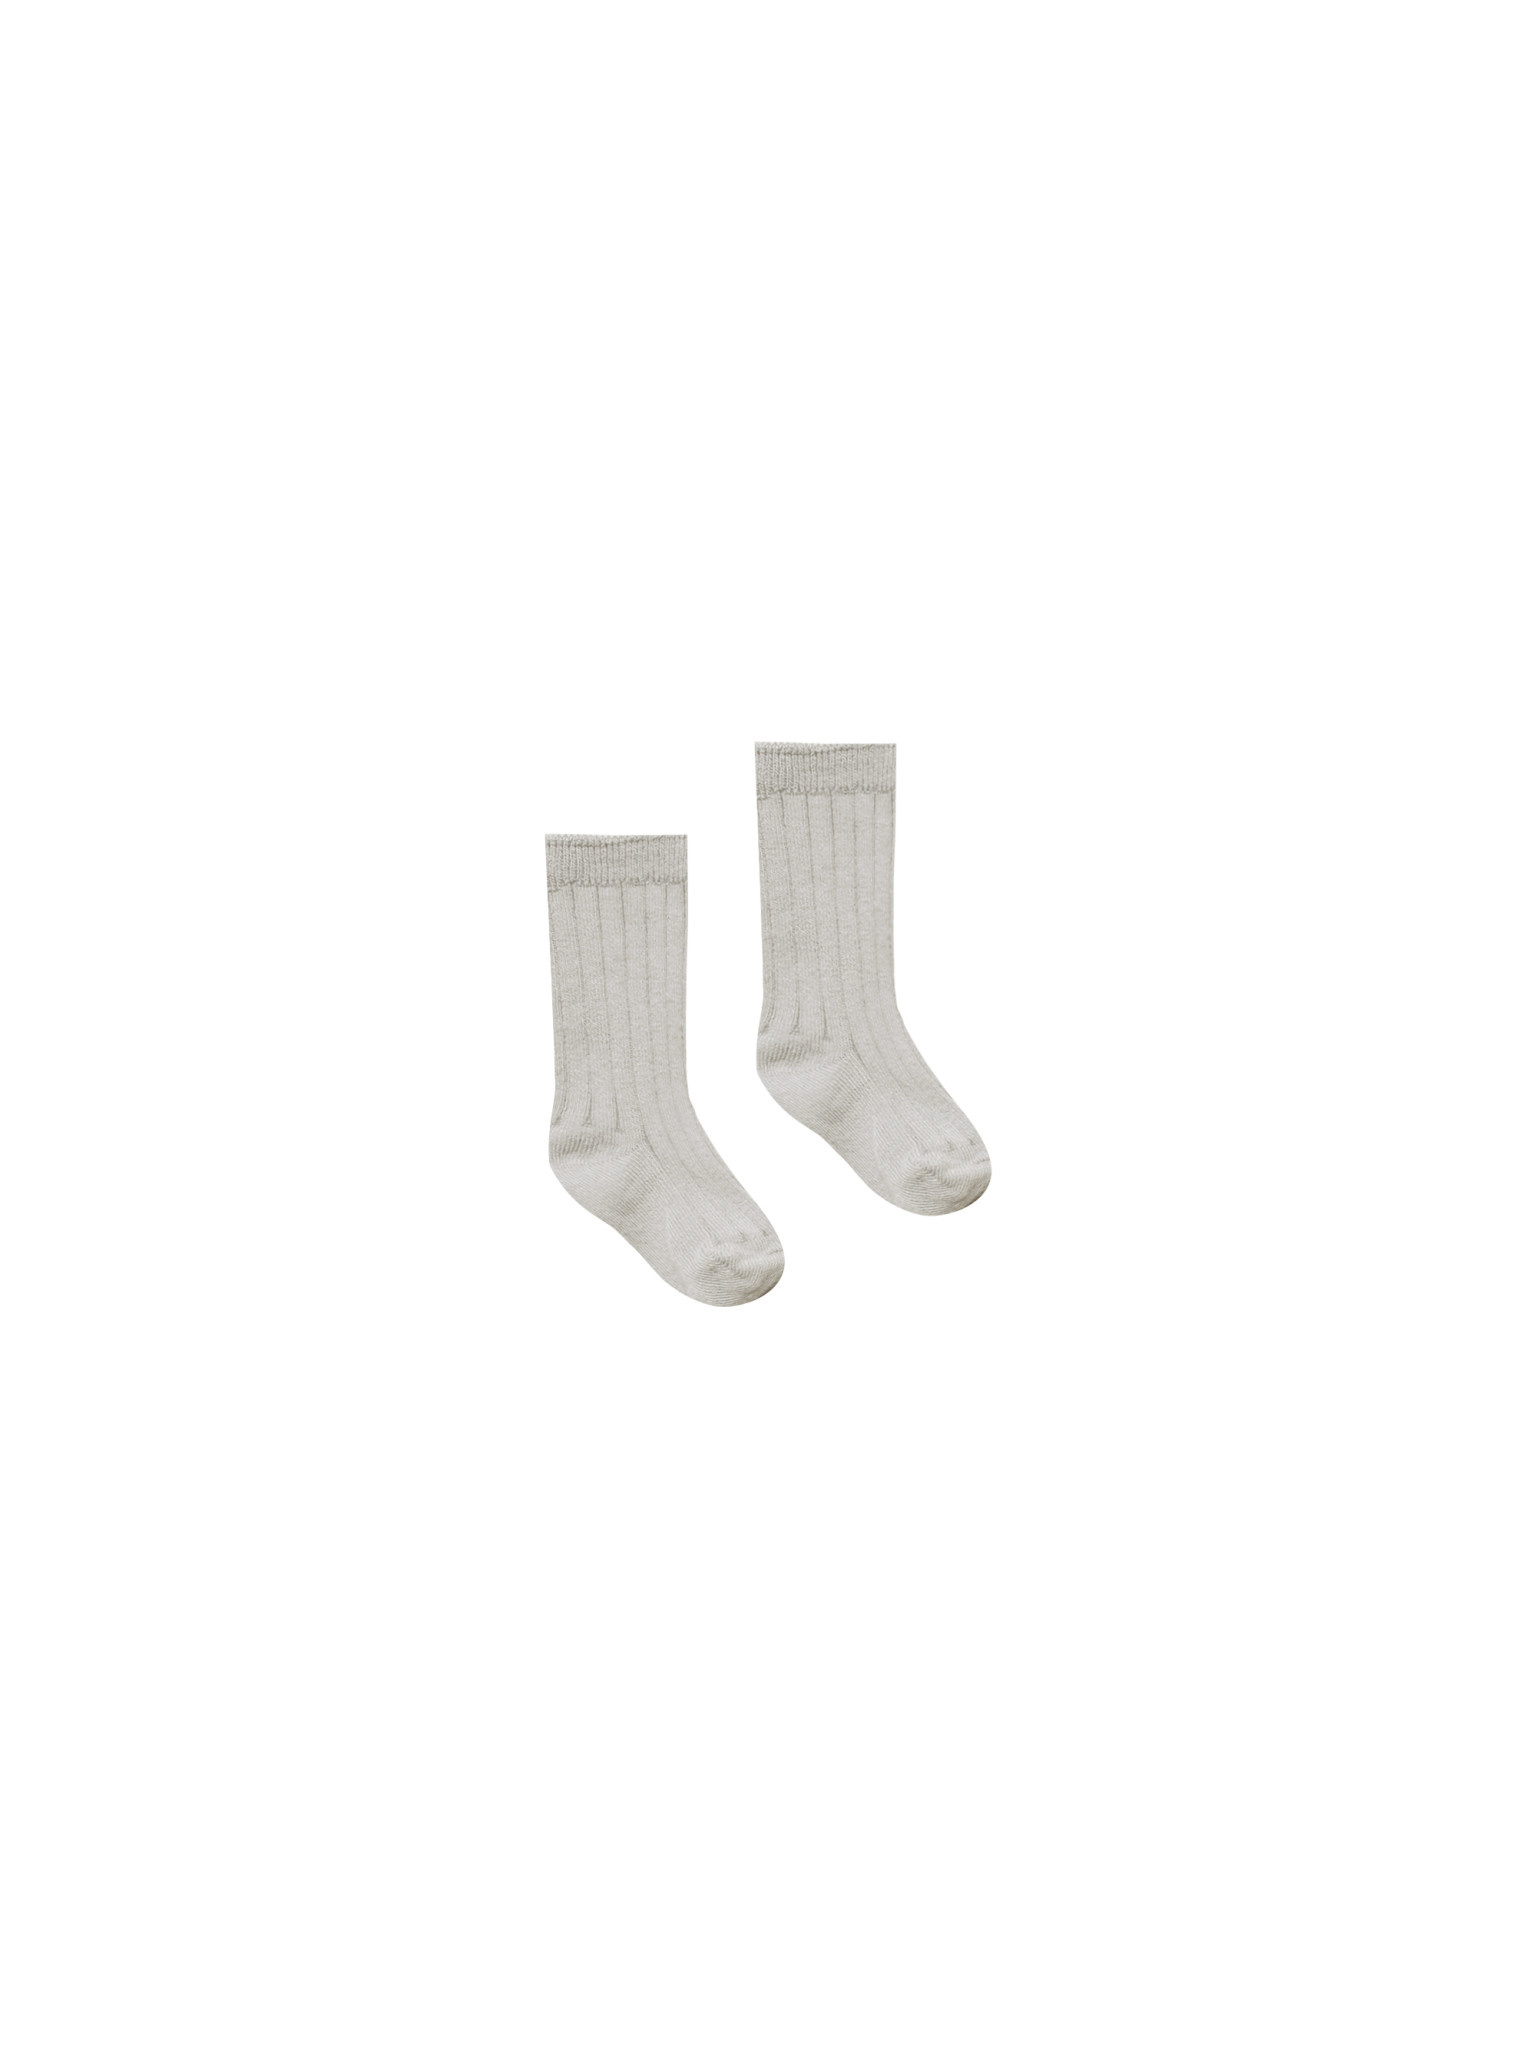 QUINCY MAE Organic 4 Pack Baby Socks